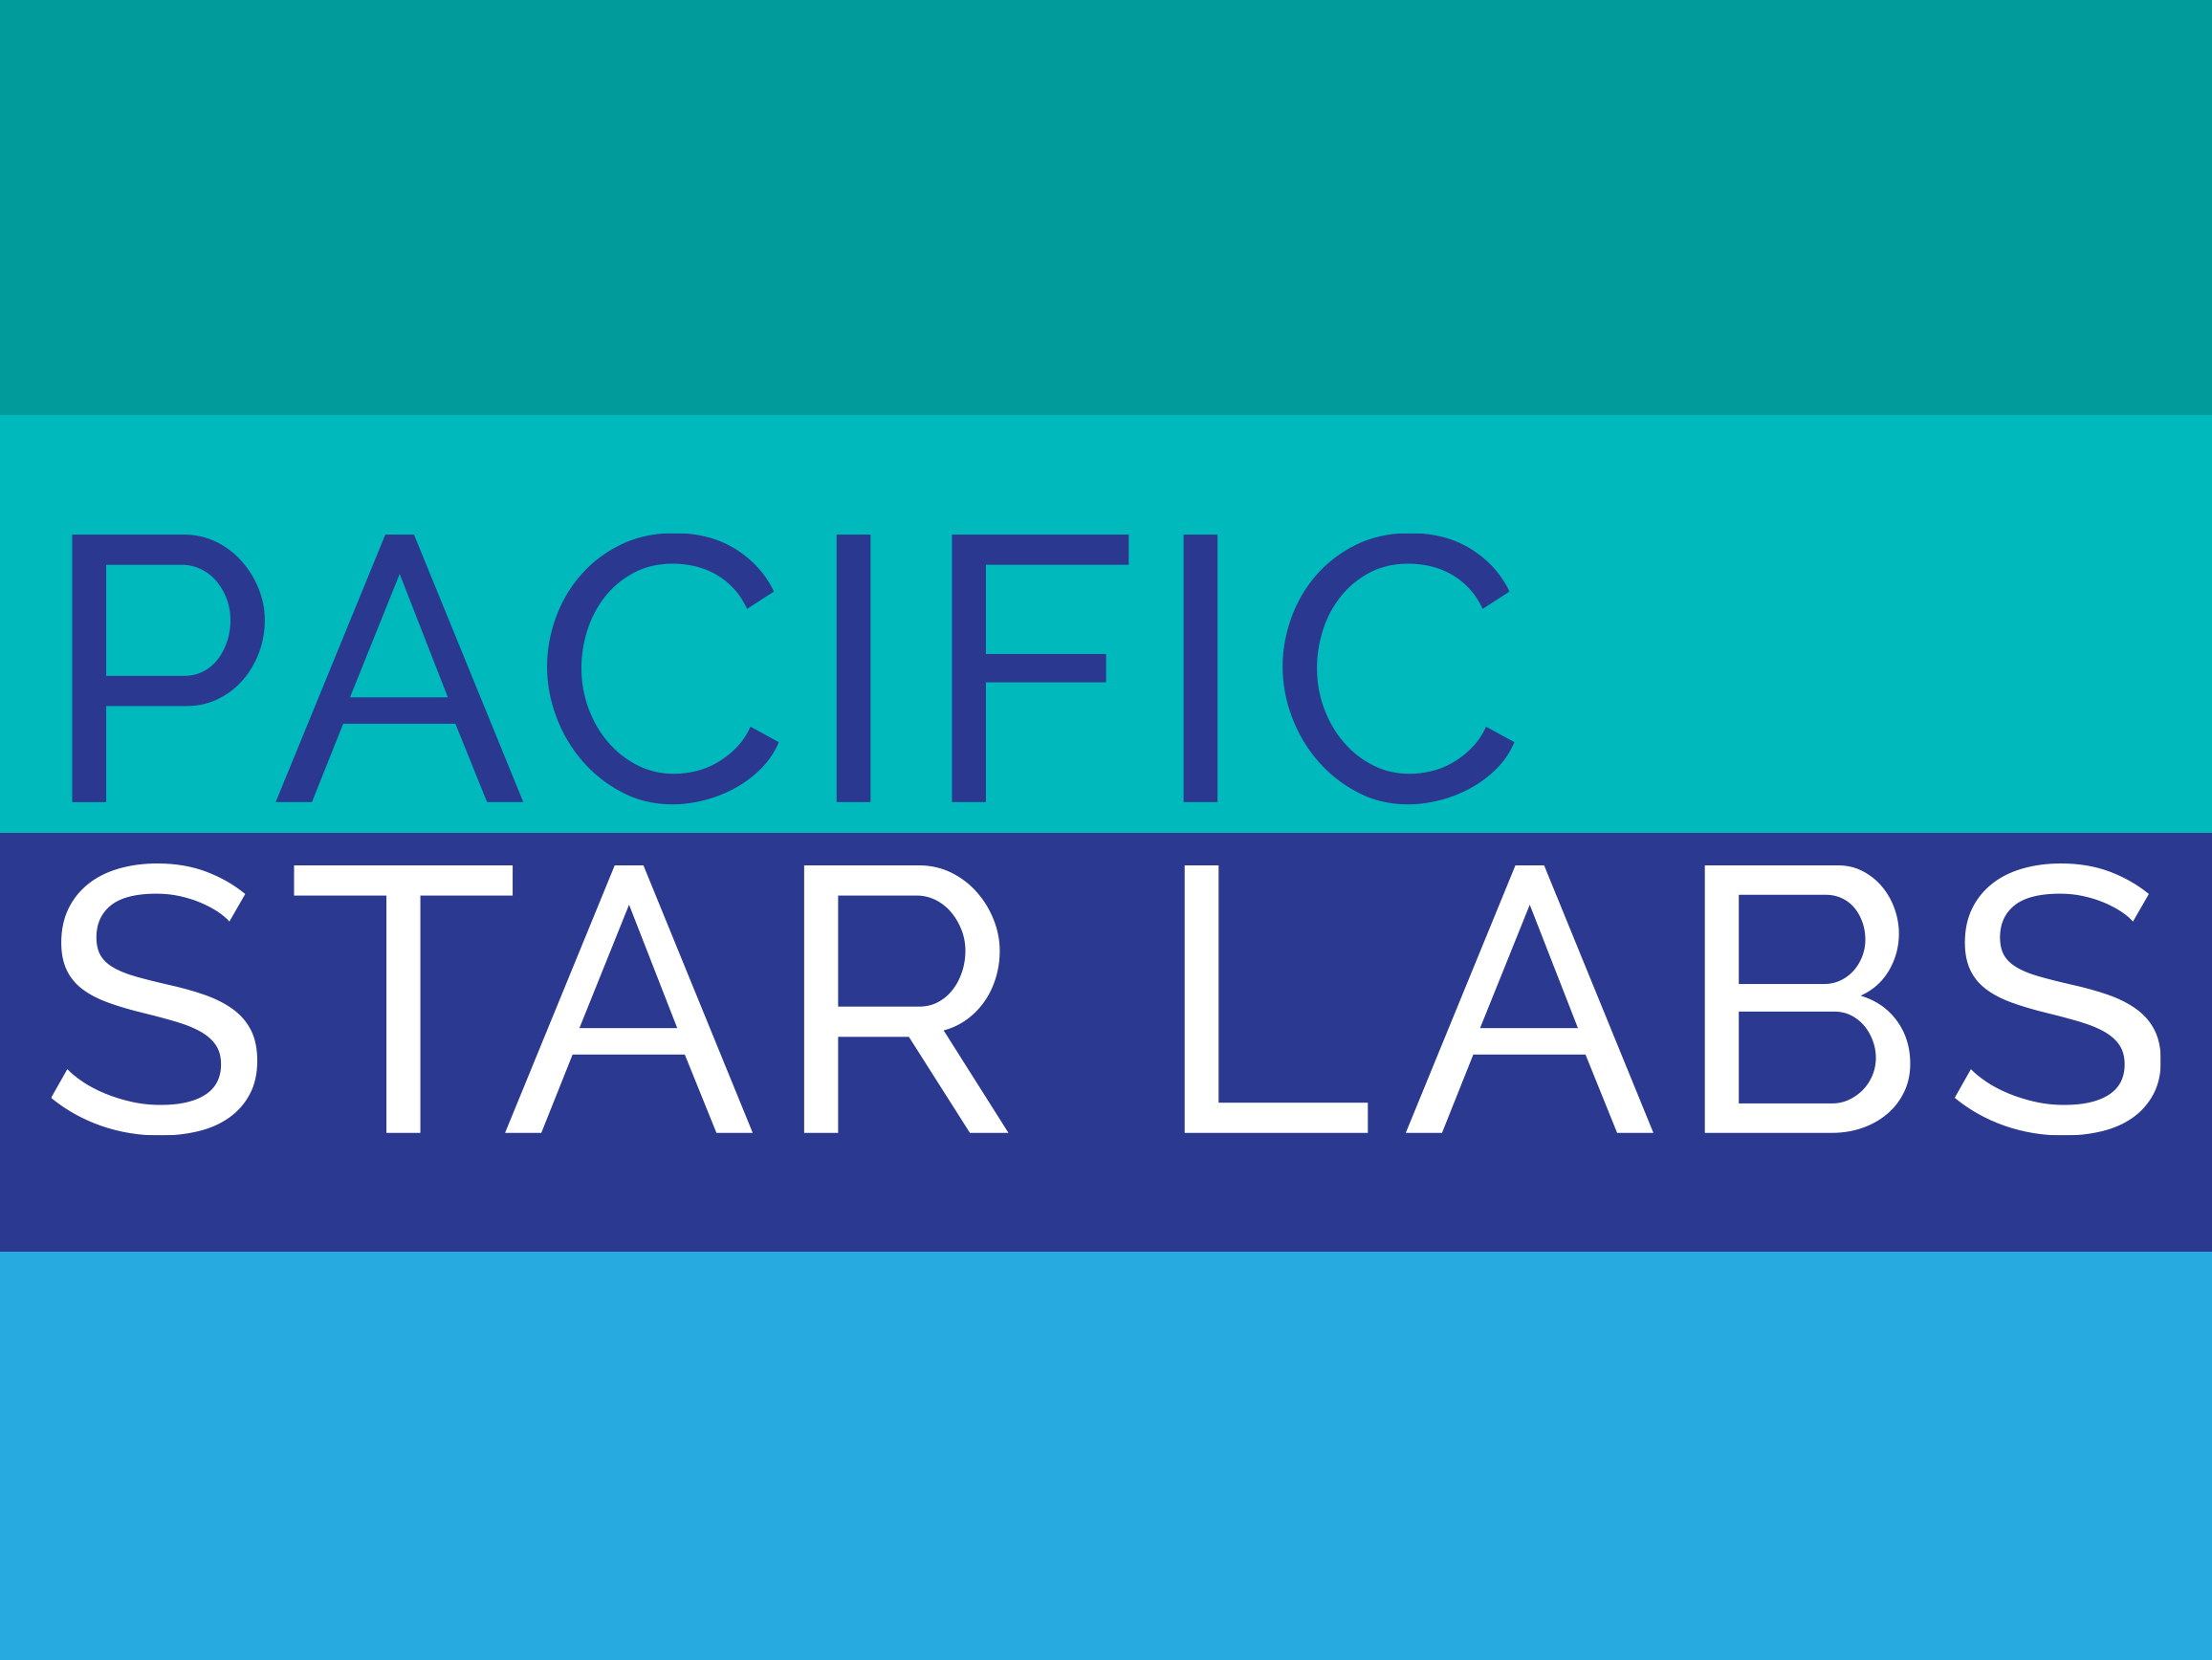 https://trpeskidesign.com/project/pacificstarlabs/